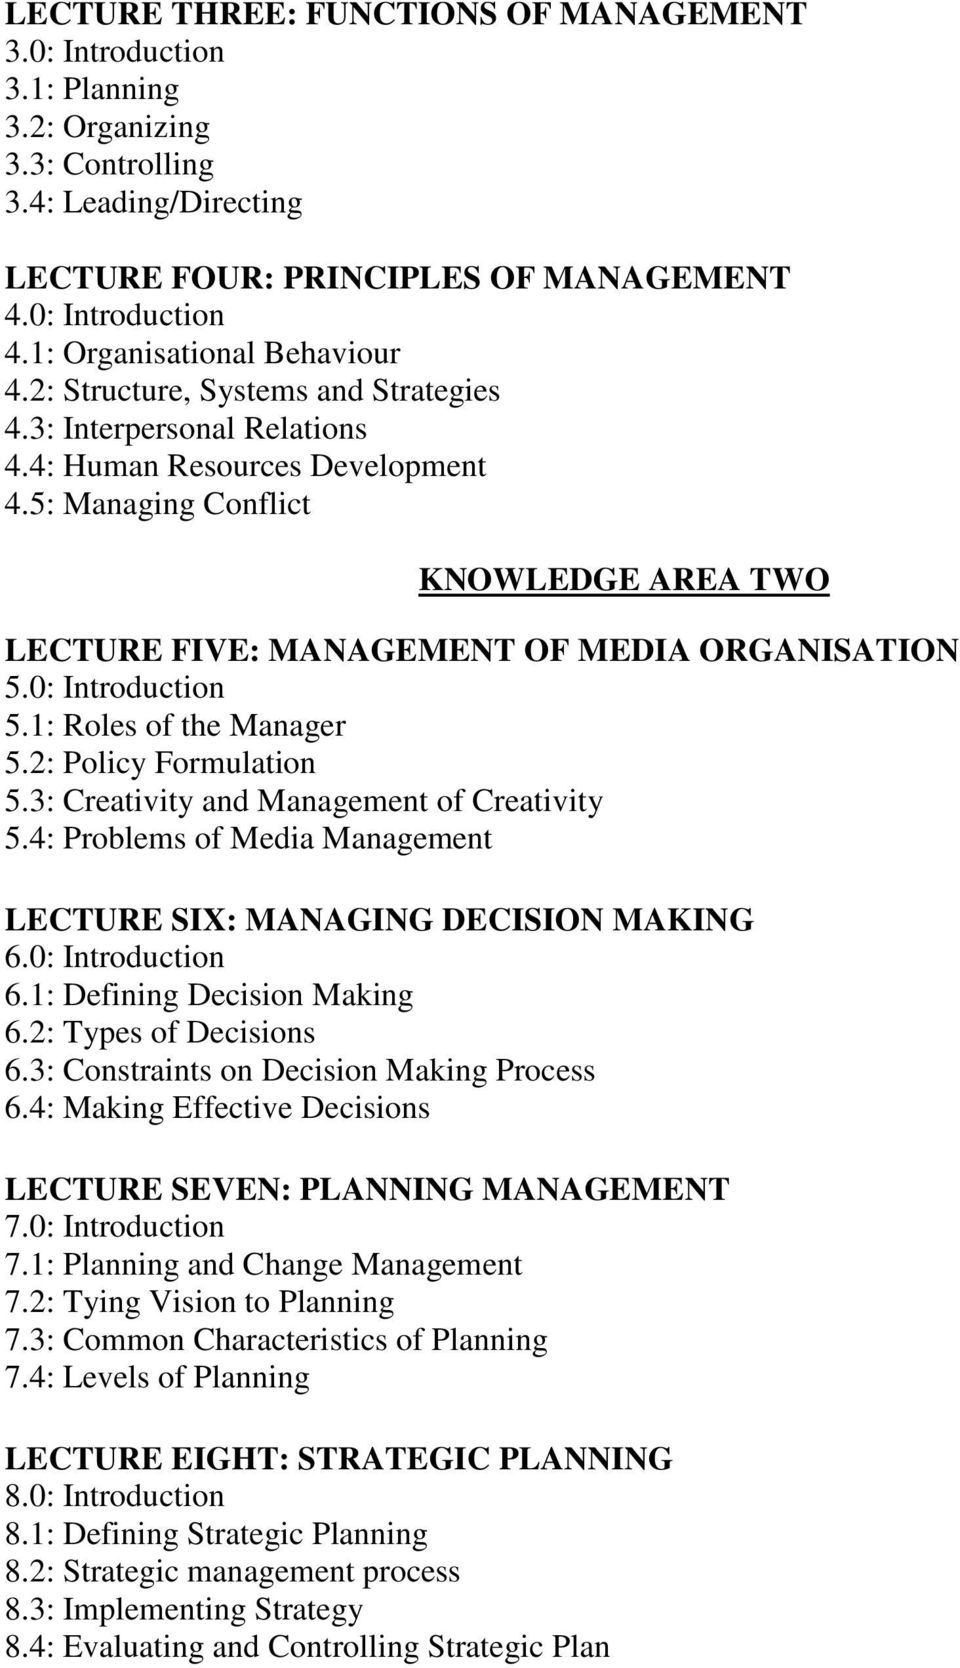 5: Managing Conflict KNOWLEDGE AREA TWO LECTURE FIVE: MANAGEMENT OF MEDIA ORGANISATION 5.0: Introduction 5.1: Roles of the Manager 5.2: Policy Formulation 5.